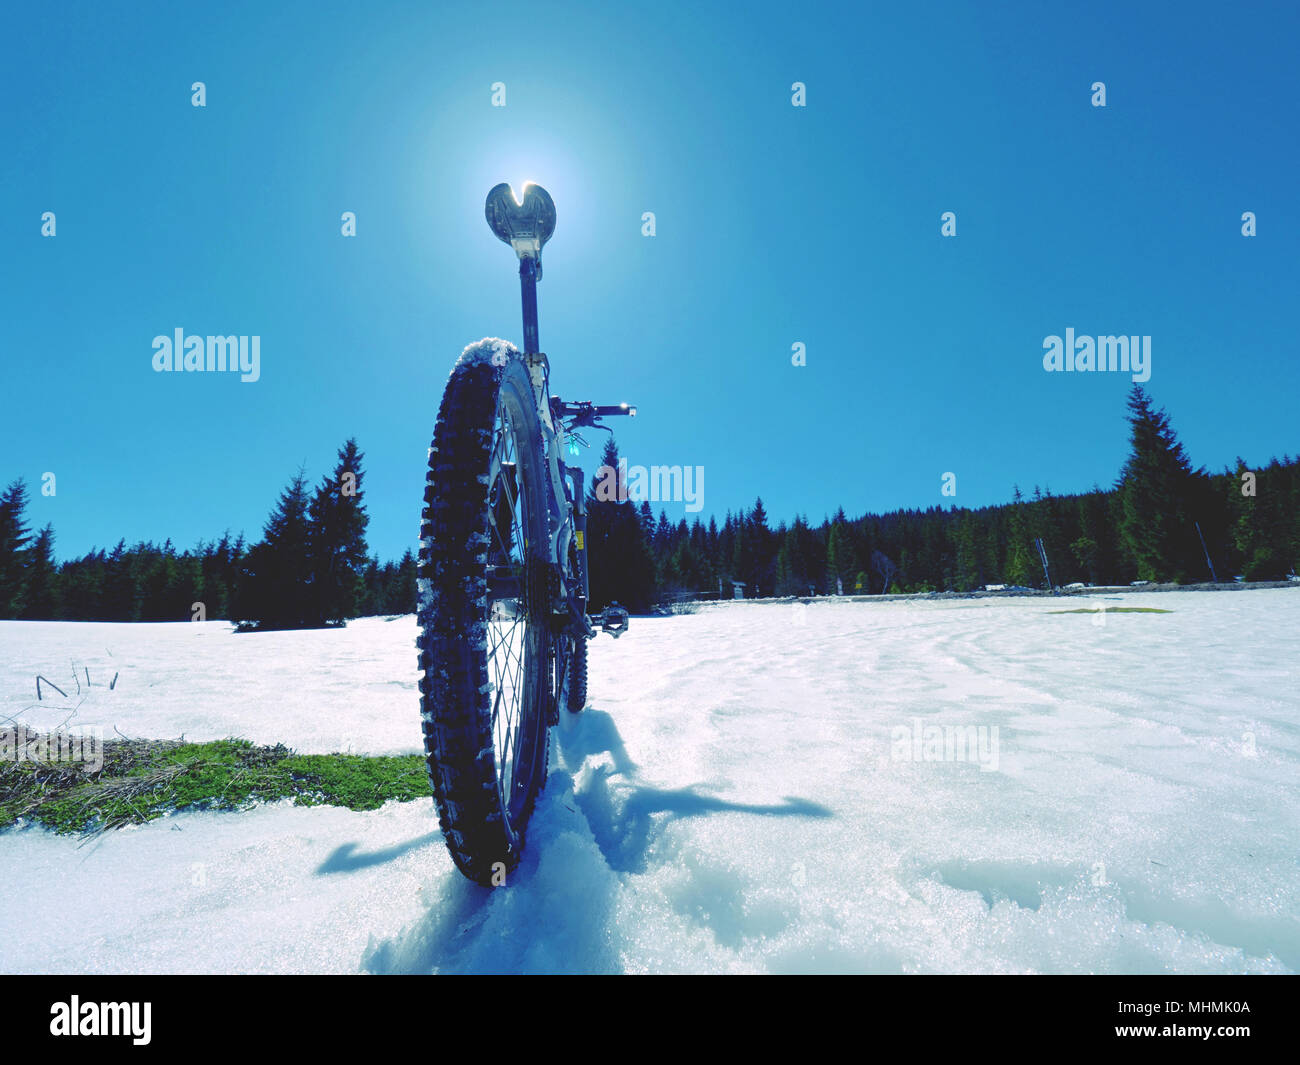 Cycling on large tyres in fresh snow. Biker goes by bike on the snowy road in the mountains. Picture taken in HDR mode. Stock Photo